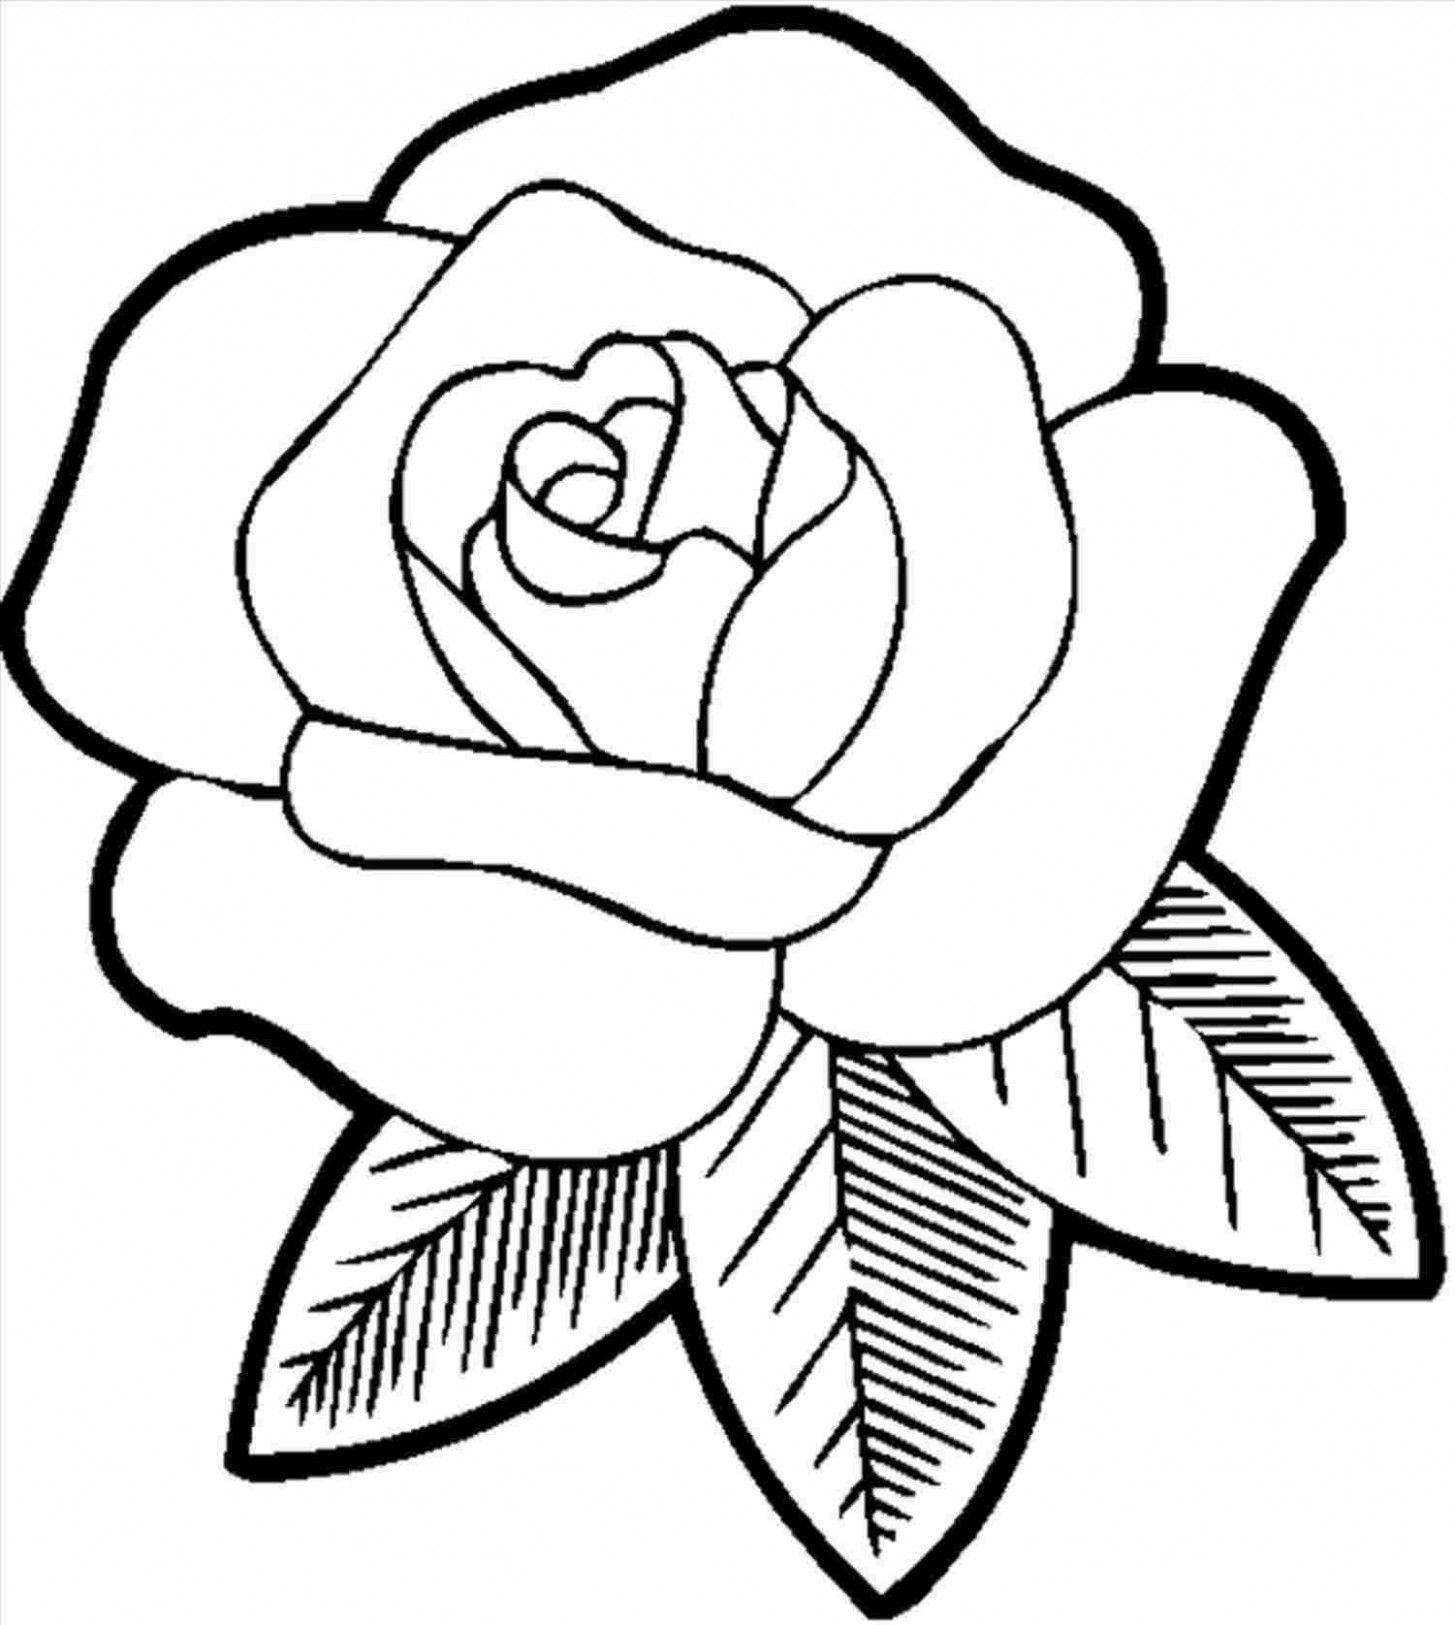 11 Disadvantages Of Flower Drawing For Kids And How You Can Workaround It Flower Draw Rose Coloring Pages Easy Coloring Pages Printable Flower Coloring Pages